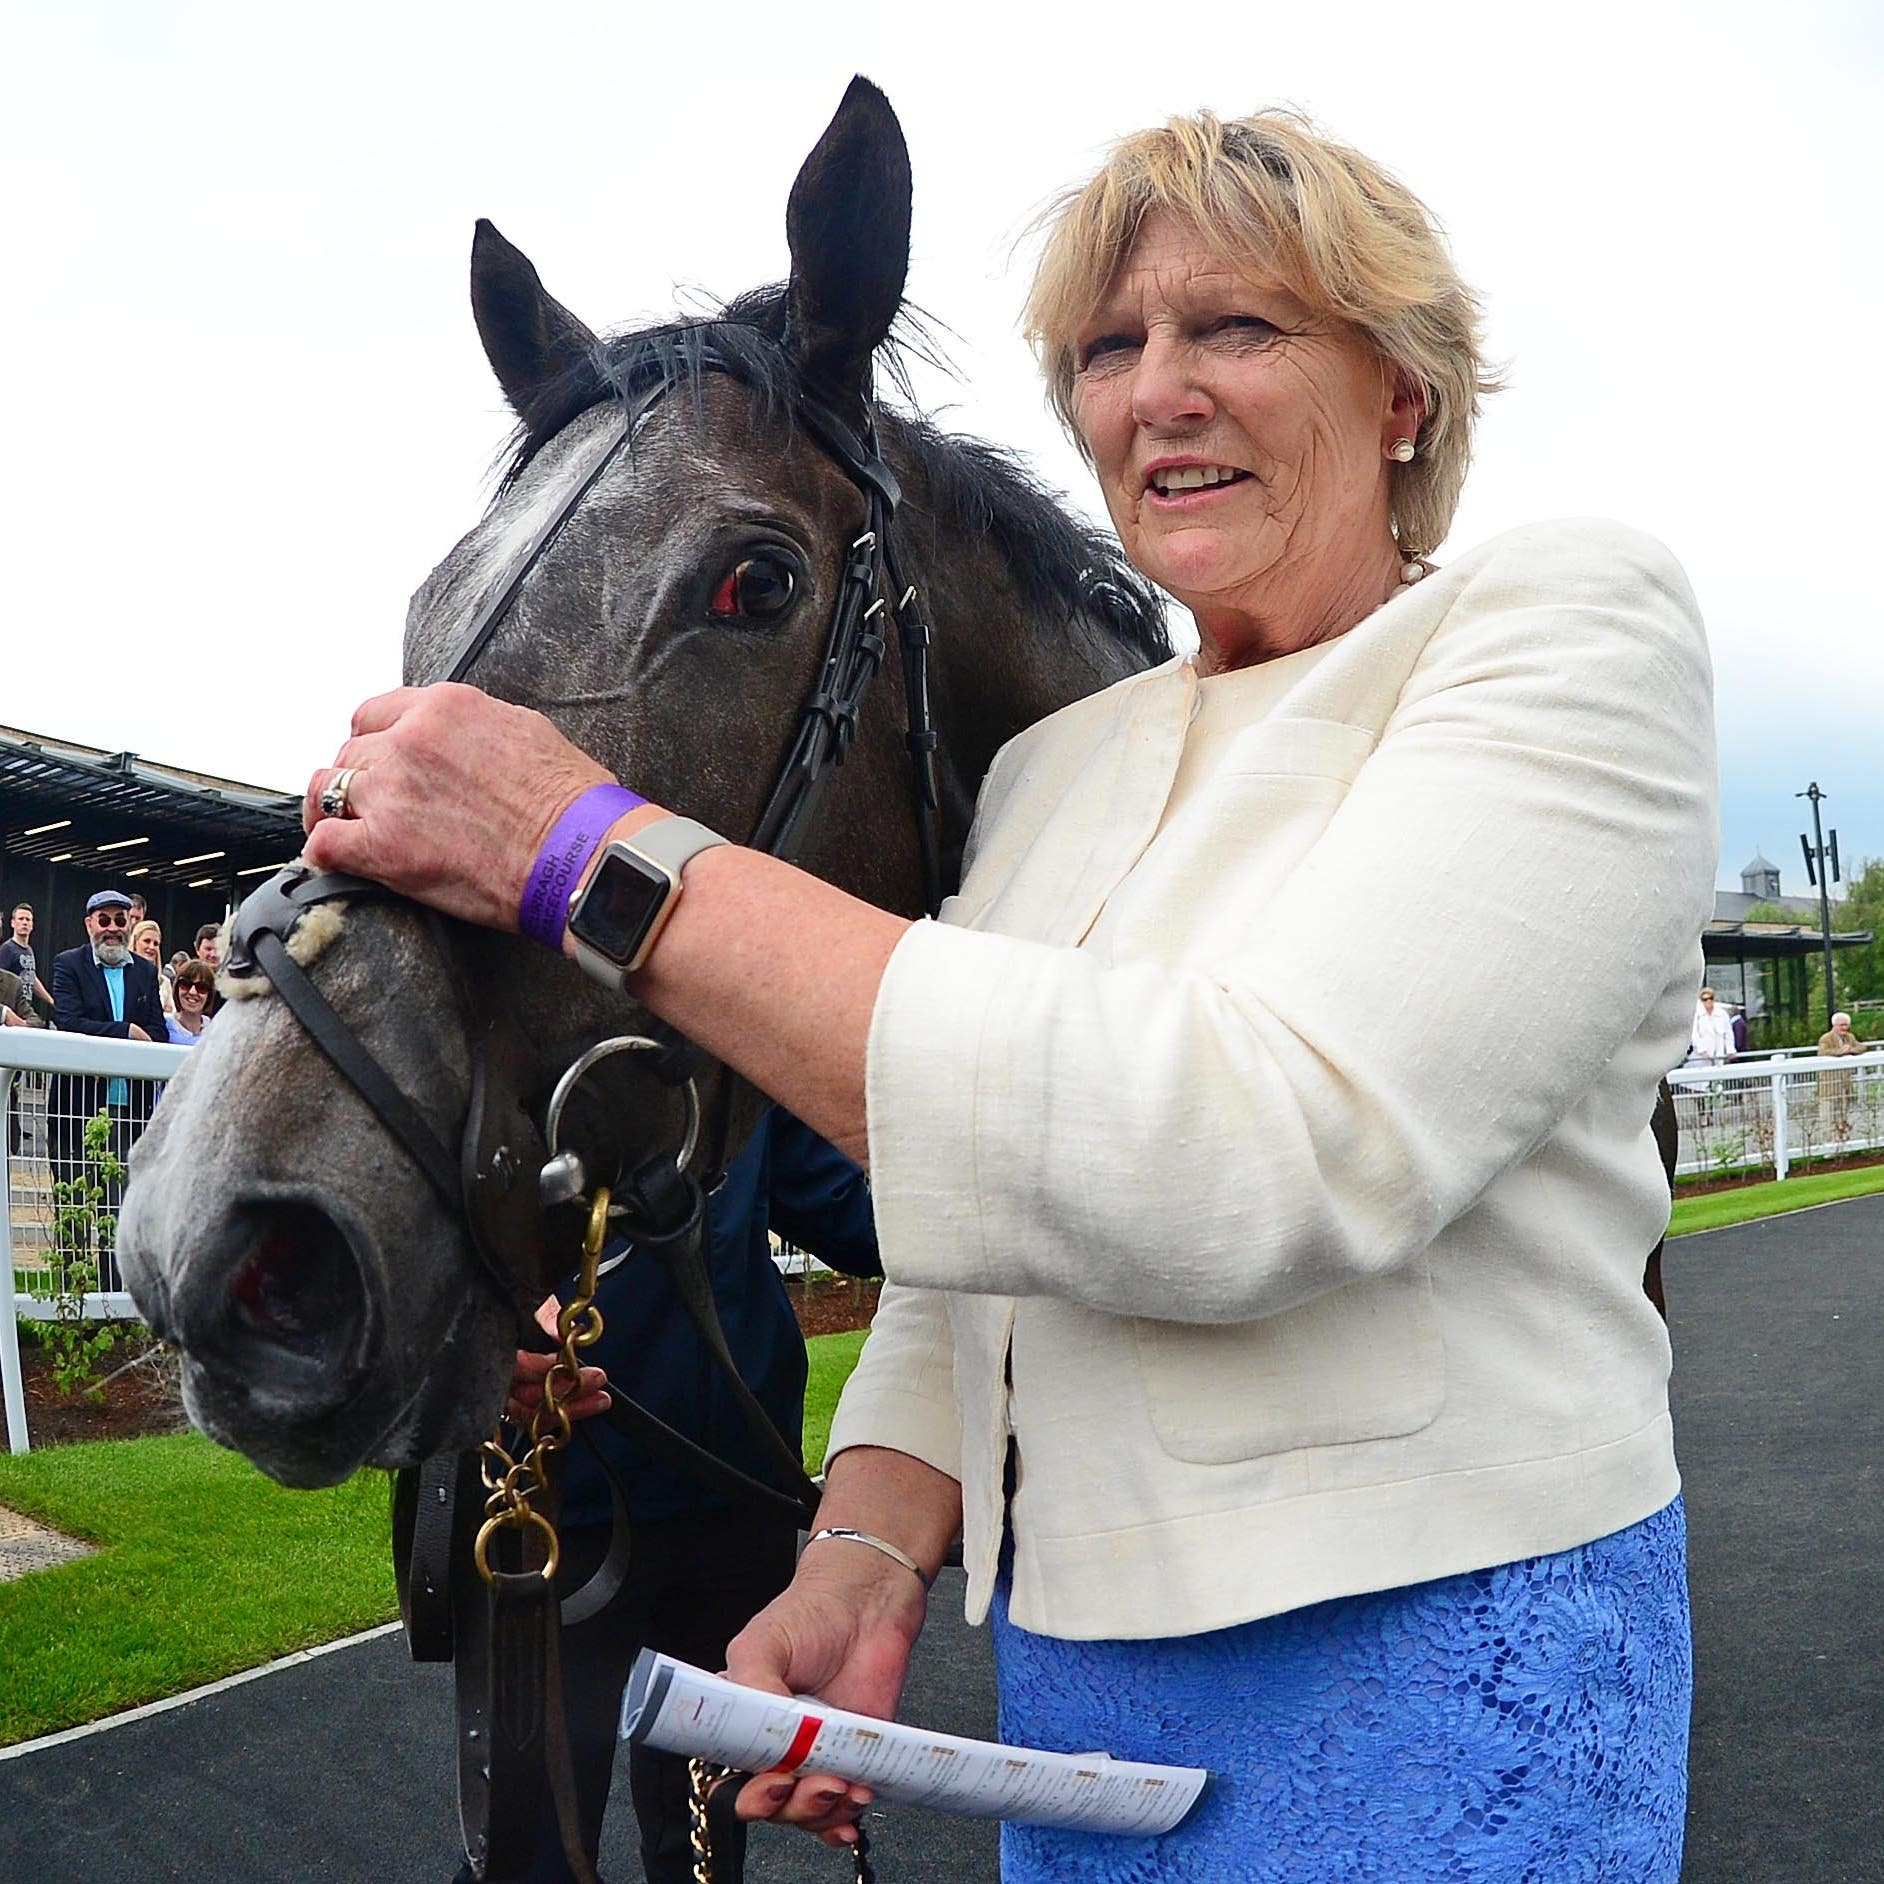 Jessica Harrington was among the winners on a truncated card at Ballinrobe